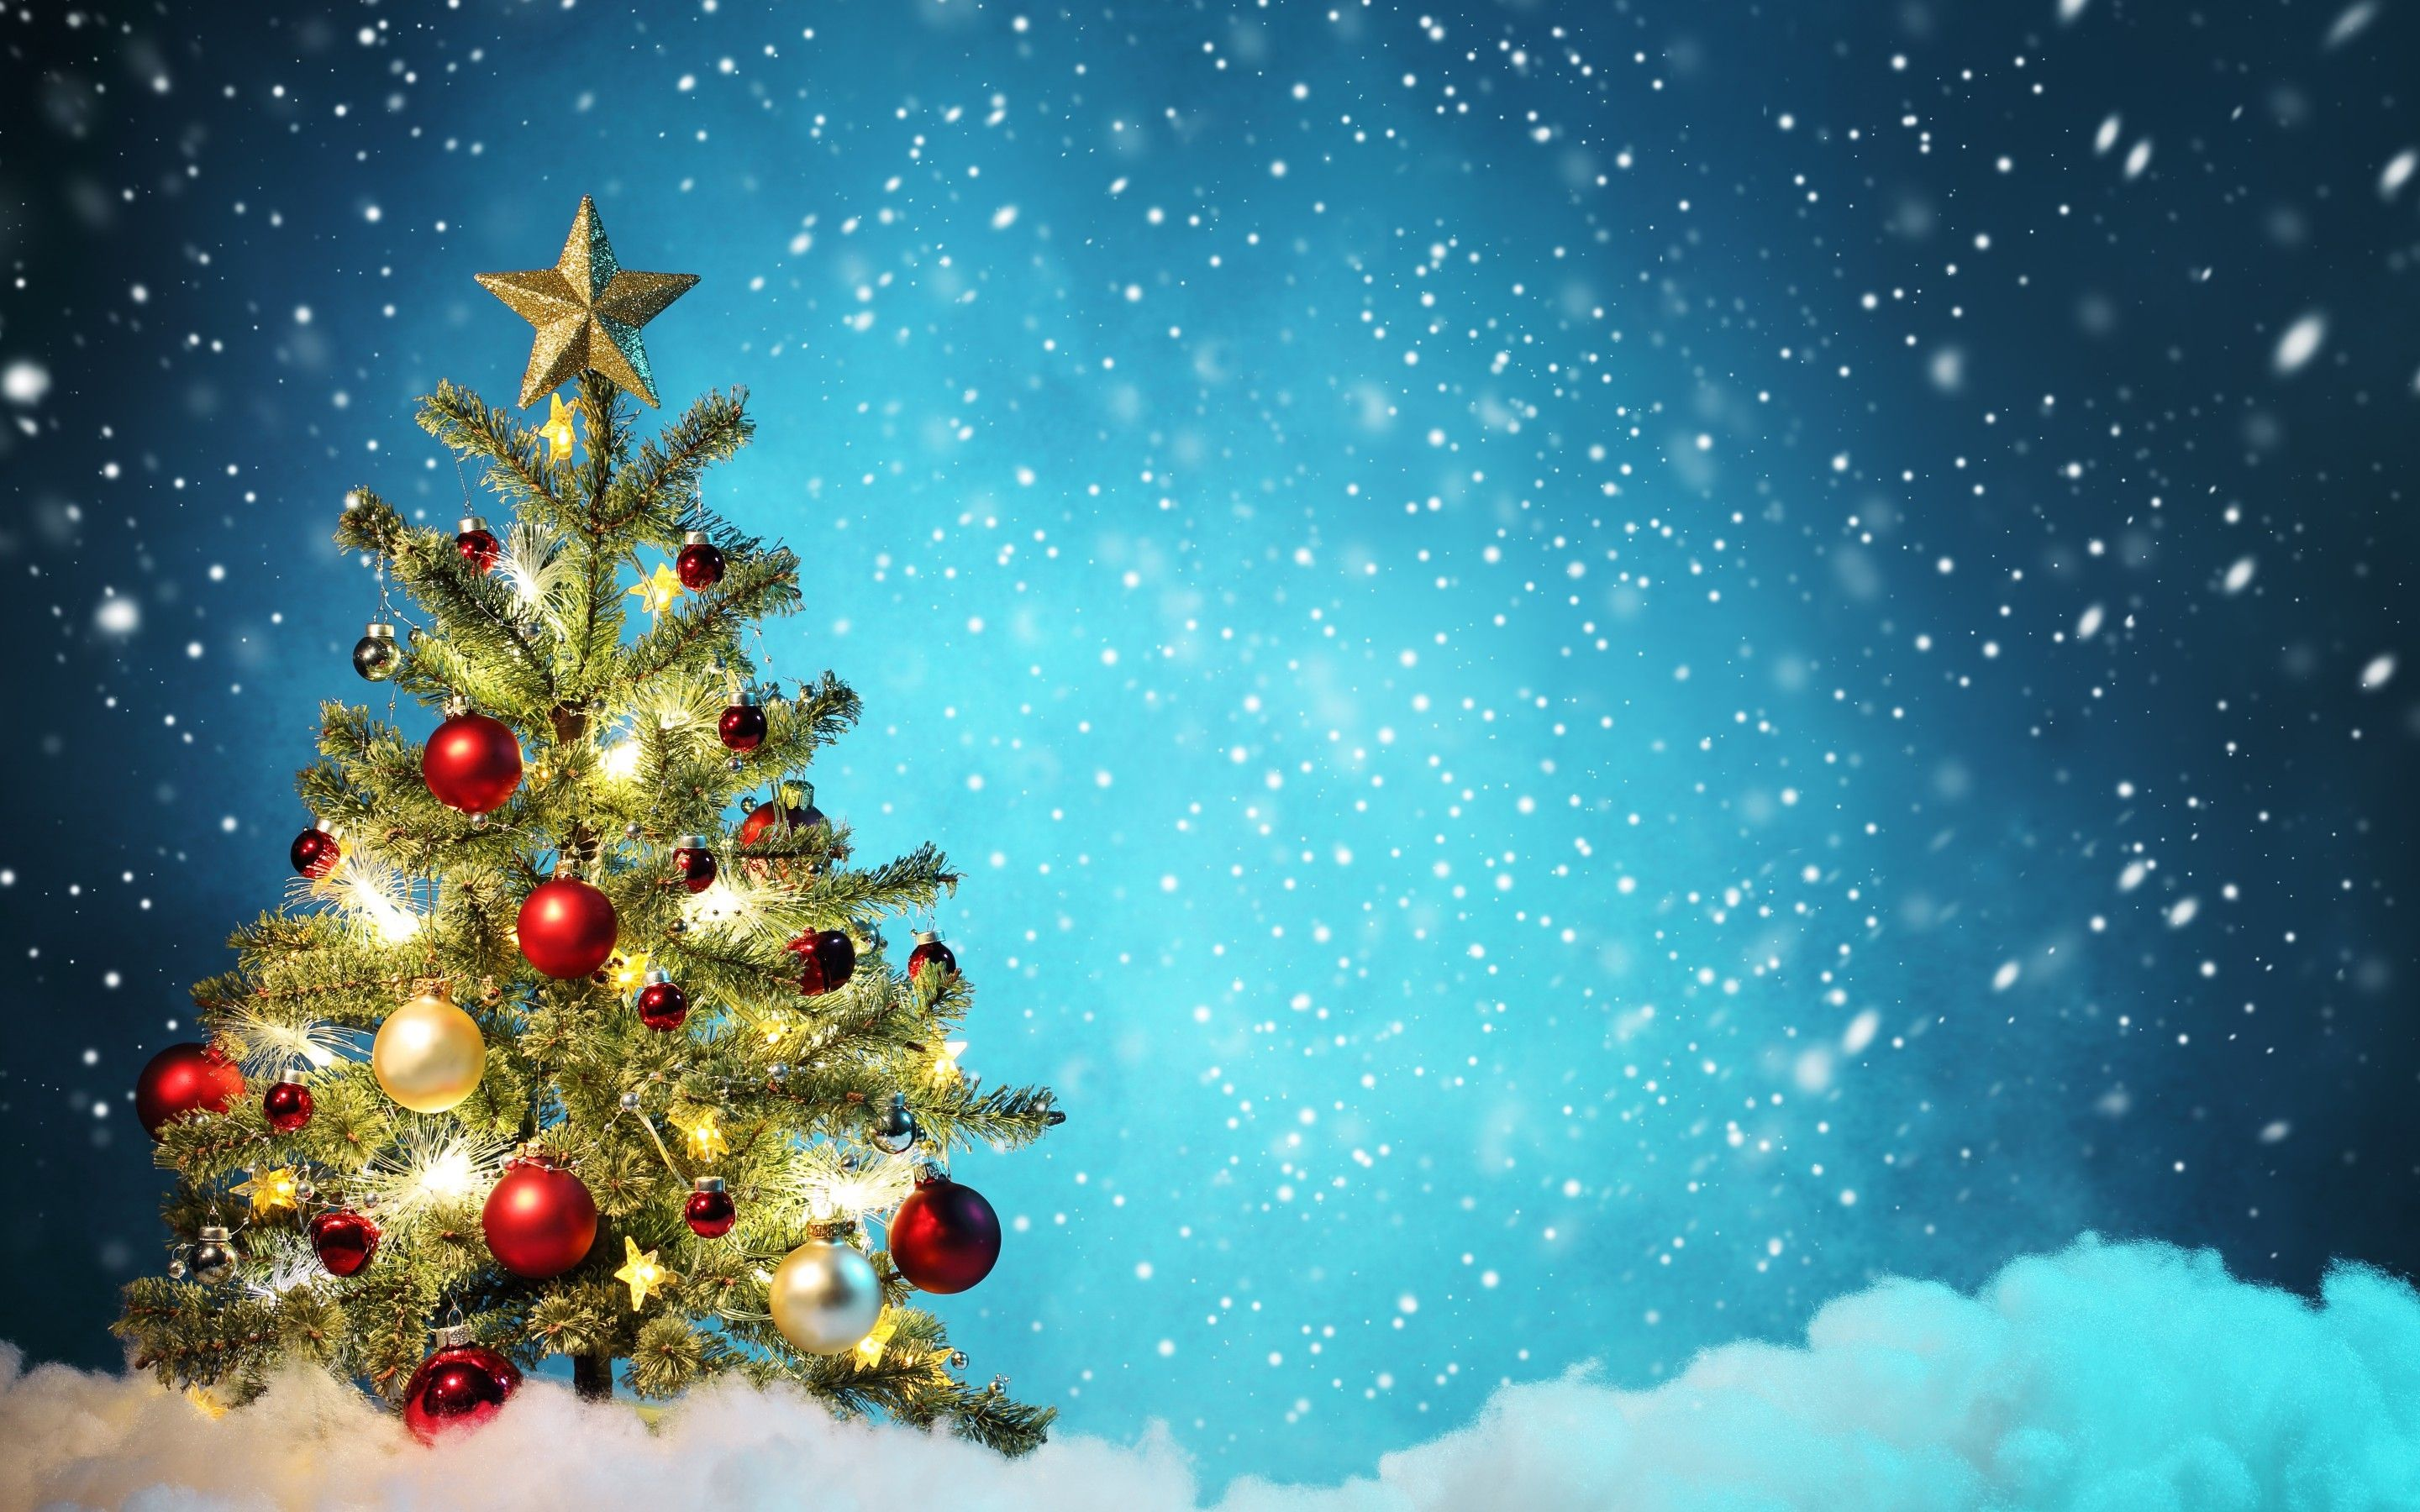 2880x1800 Cute Christmas Tree Backgrounds – Happy Holidays!